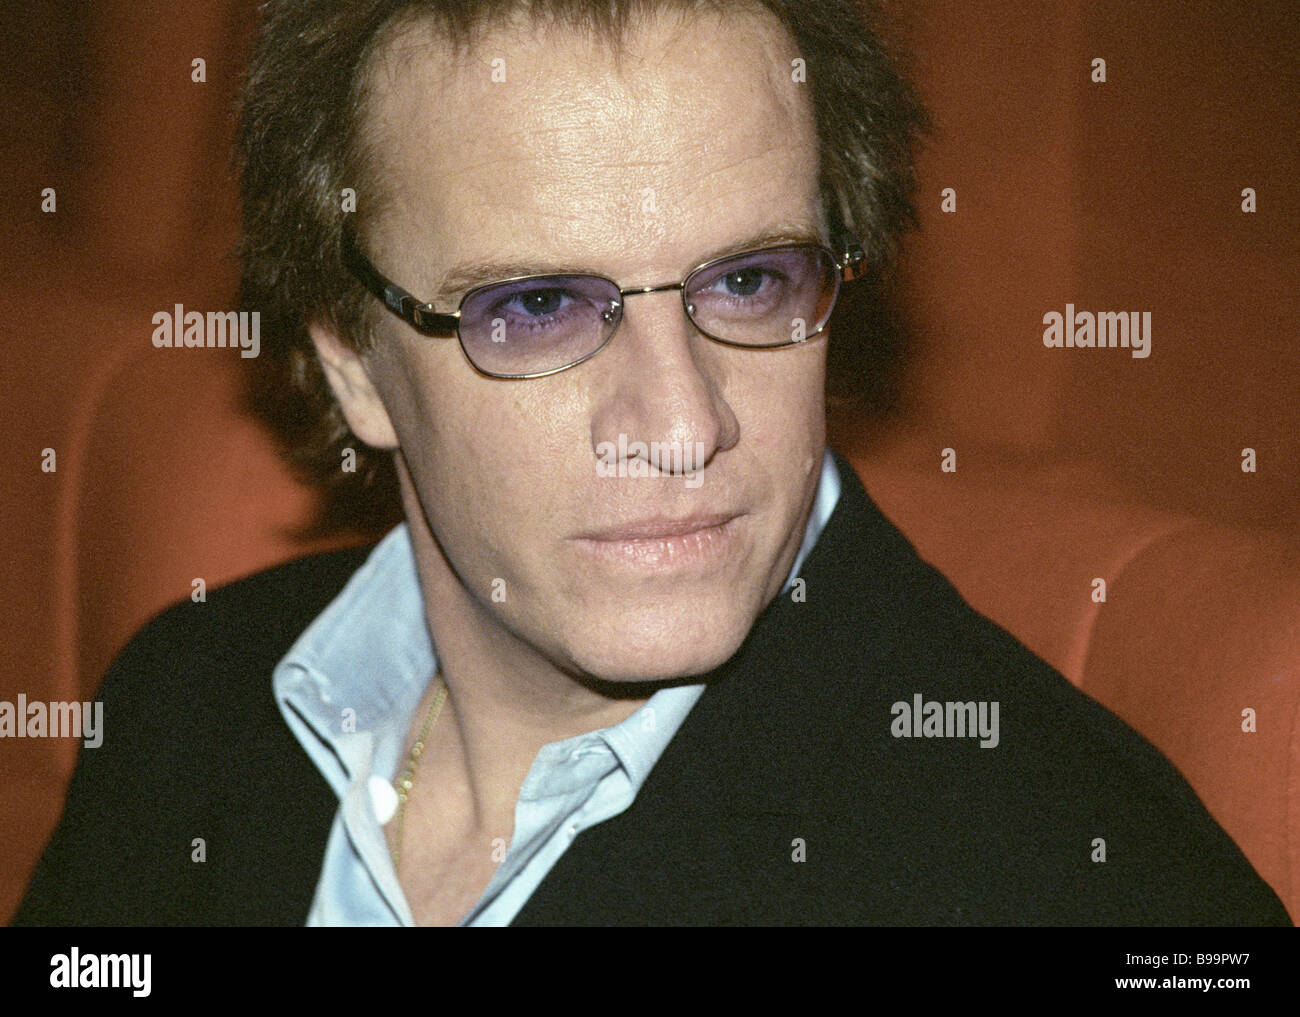 Hollywood actor Christopher Lambert attends VI Faces of Love international  film festival